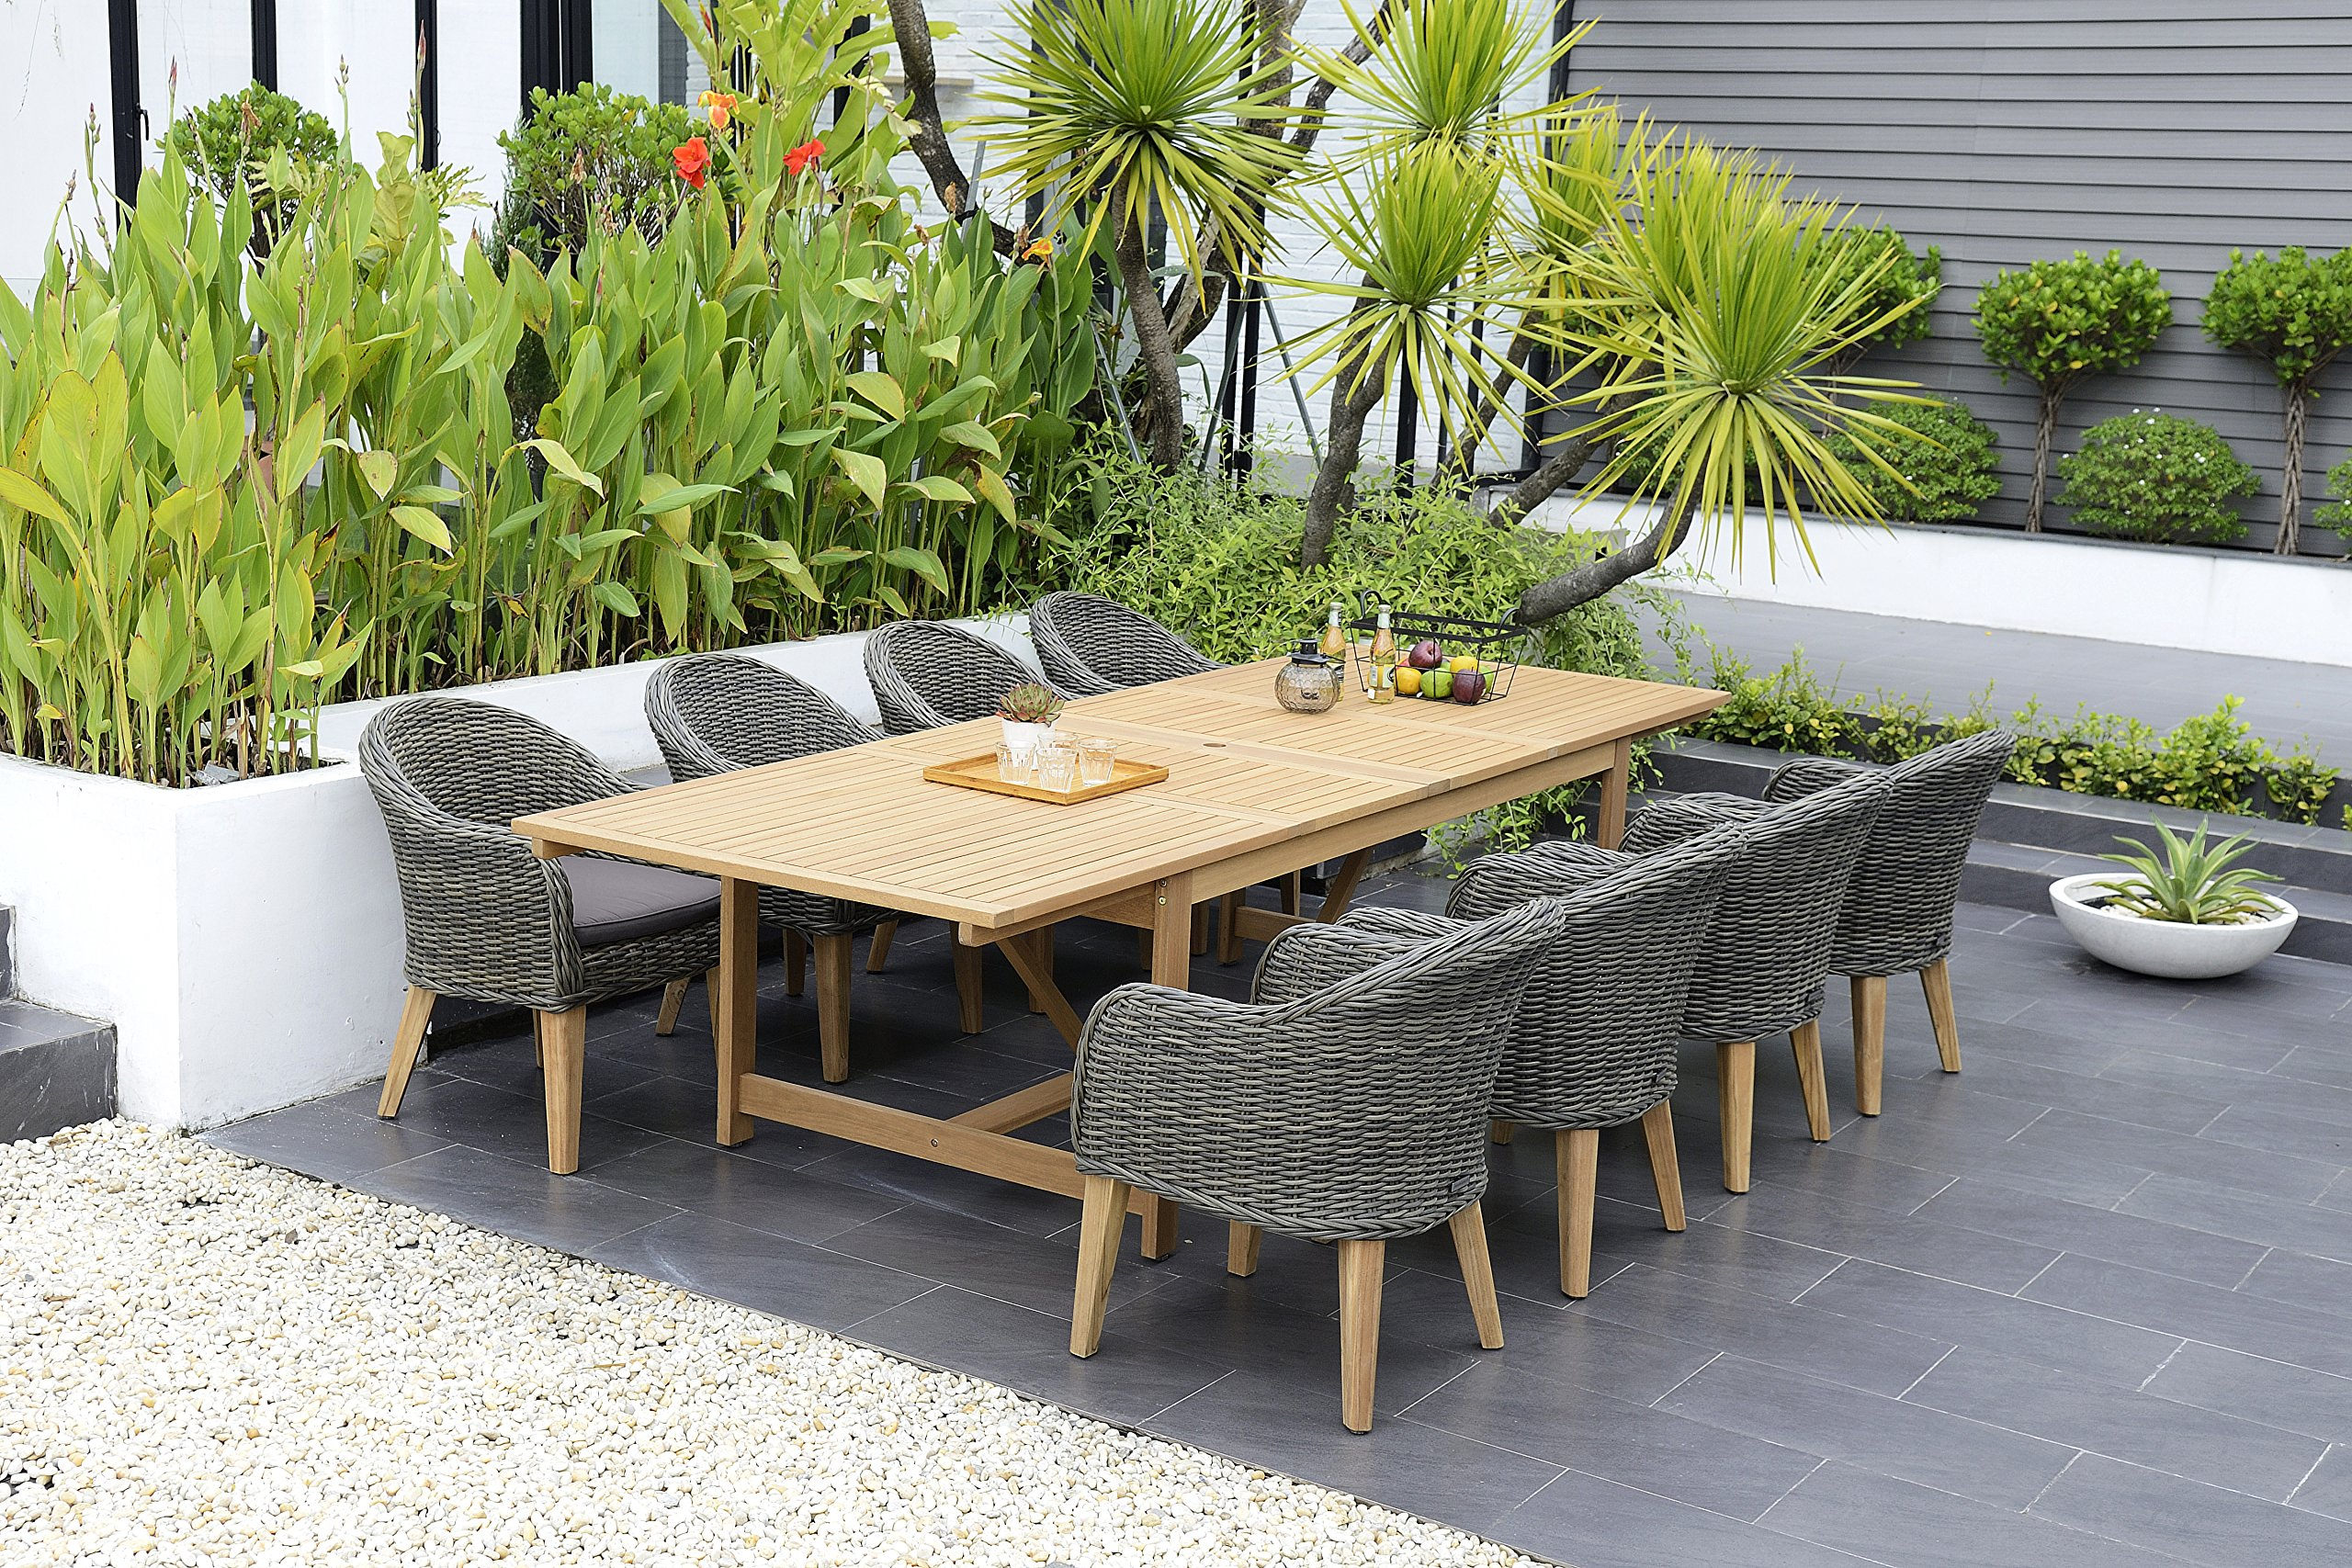 Outdoor Furniture -  -  - A1aJlFdCs8L -